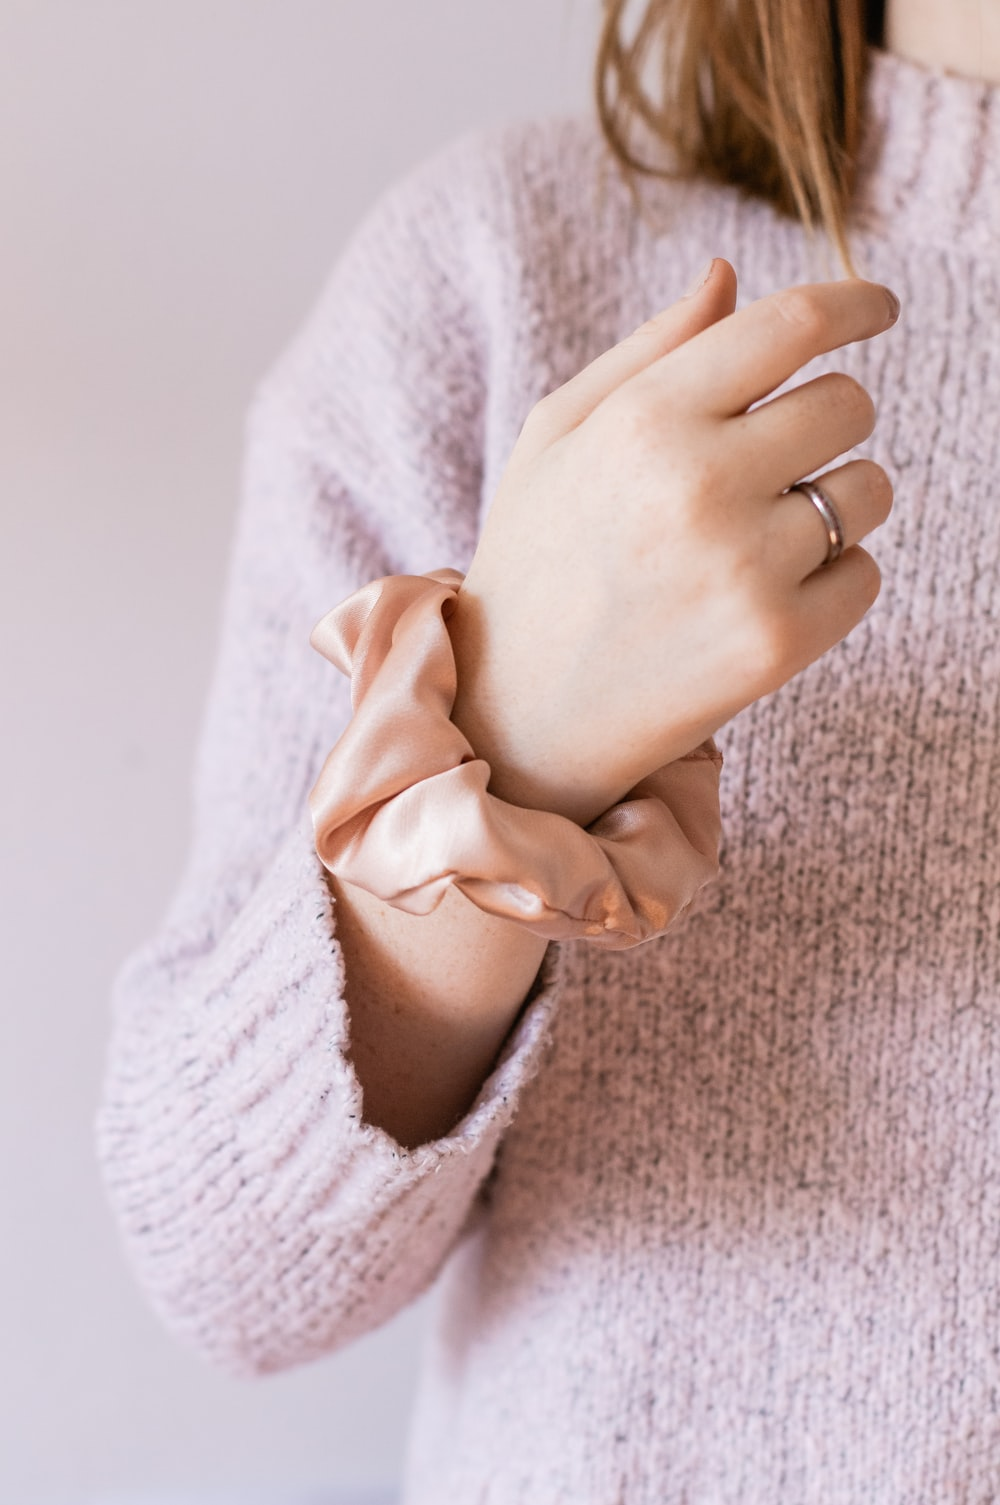 woman in white knit sweater holding her hand